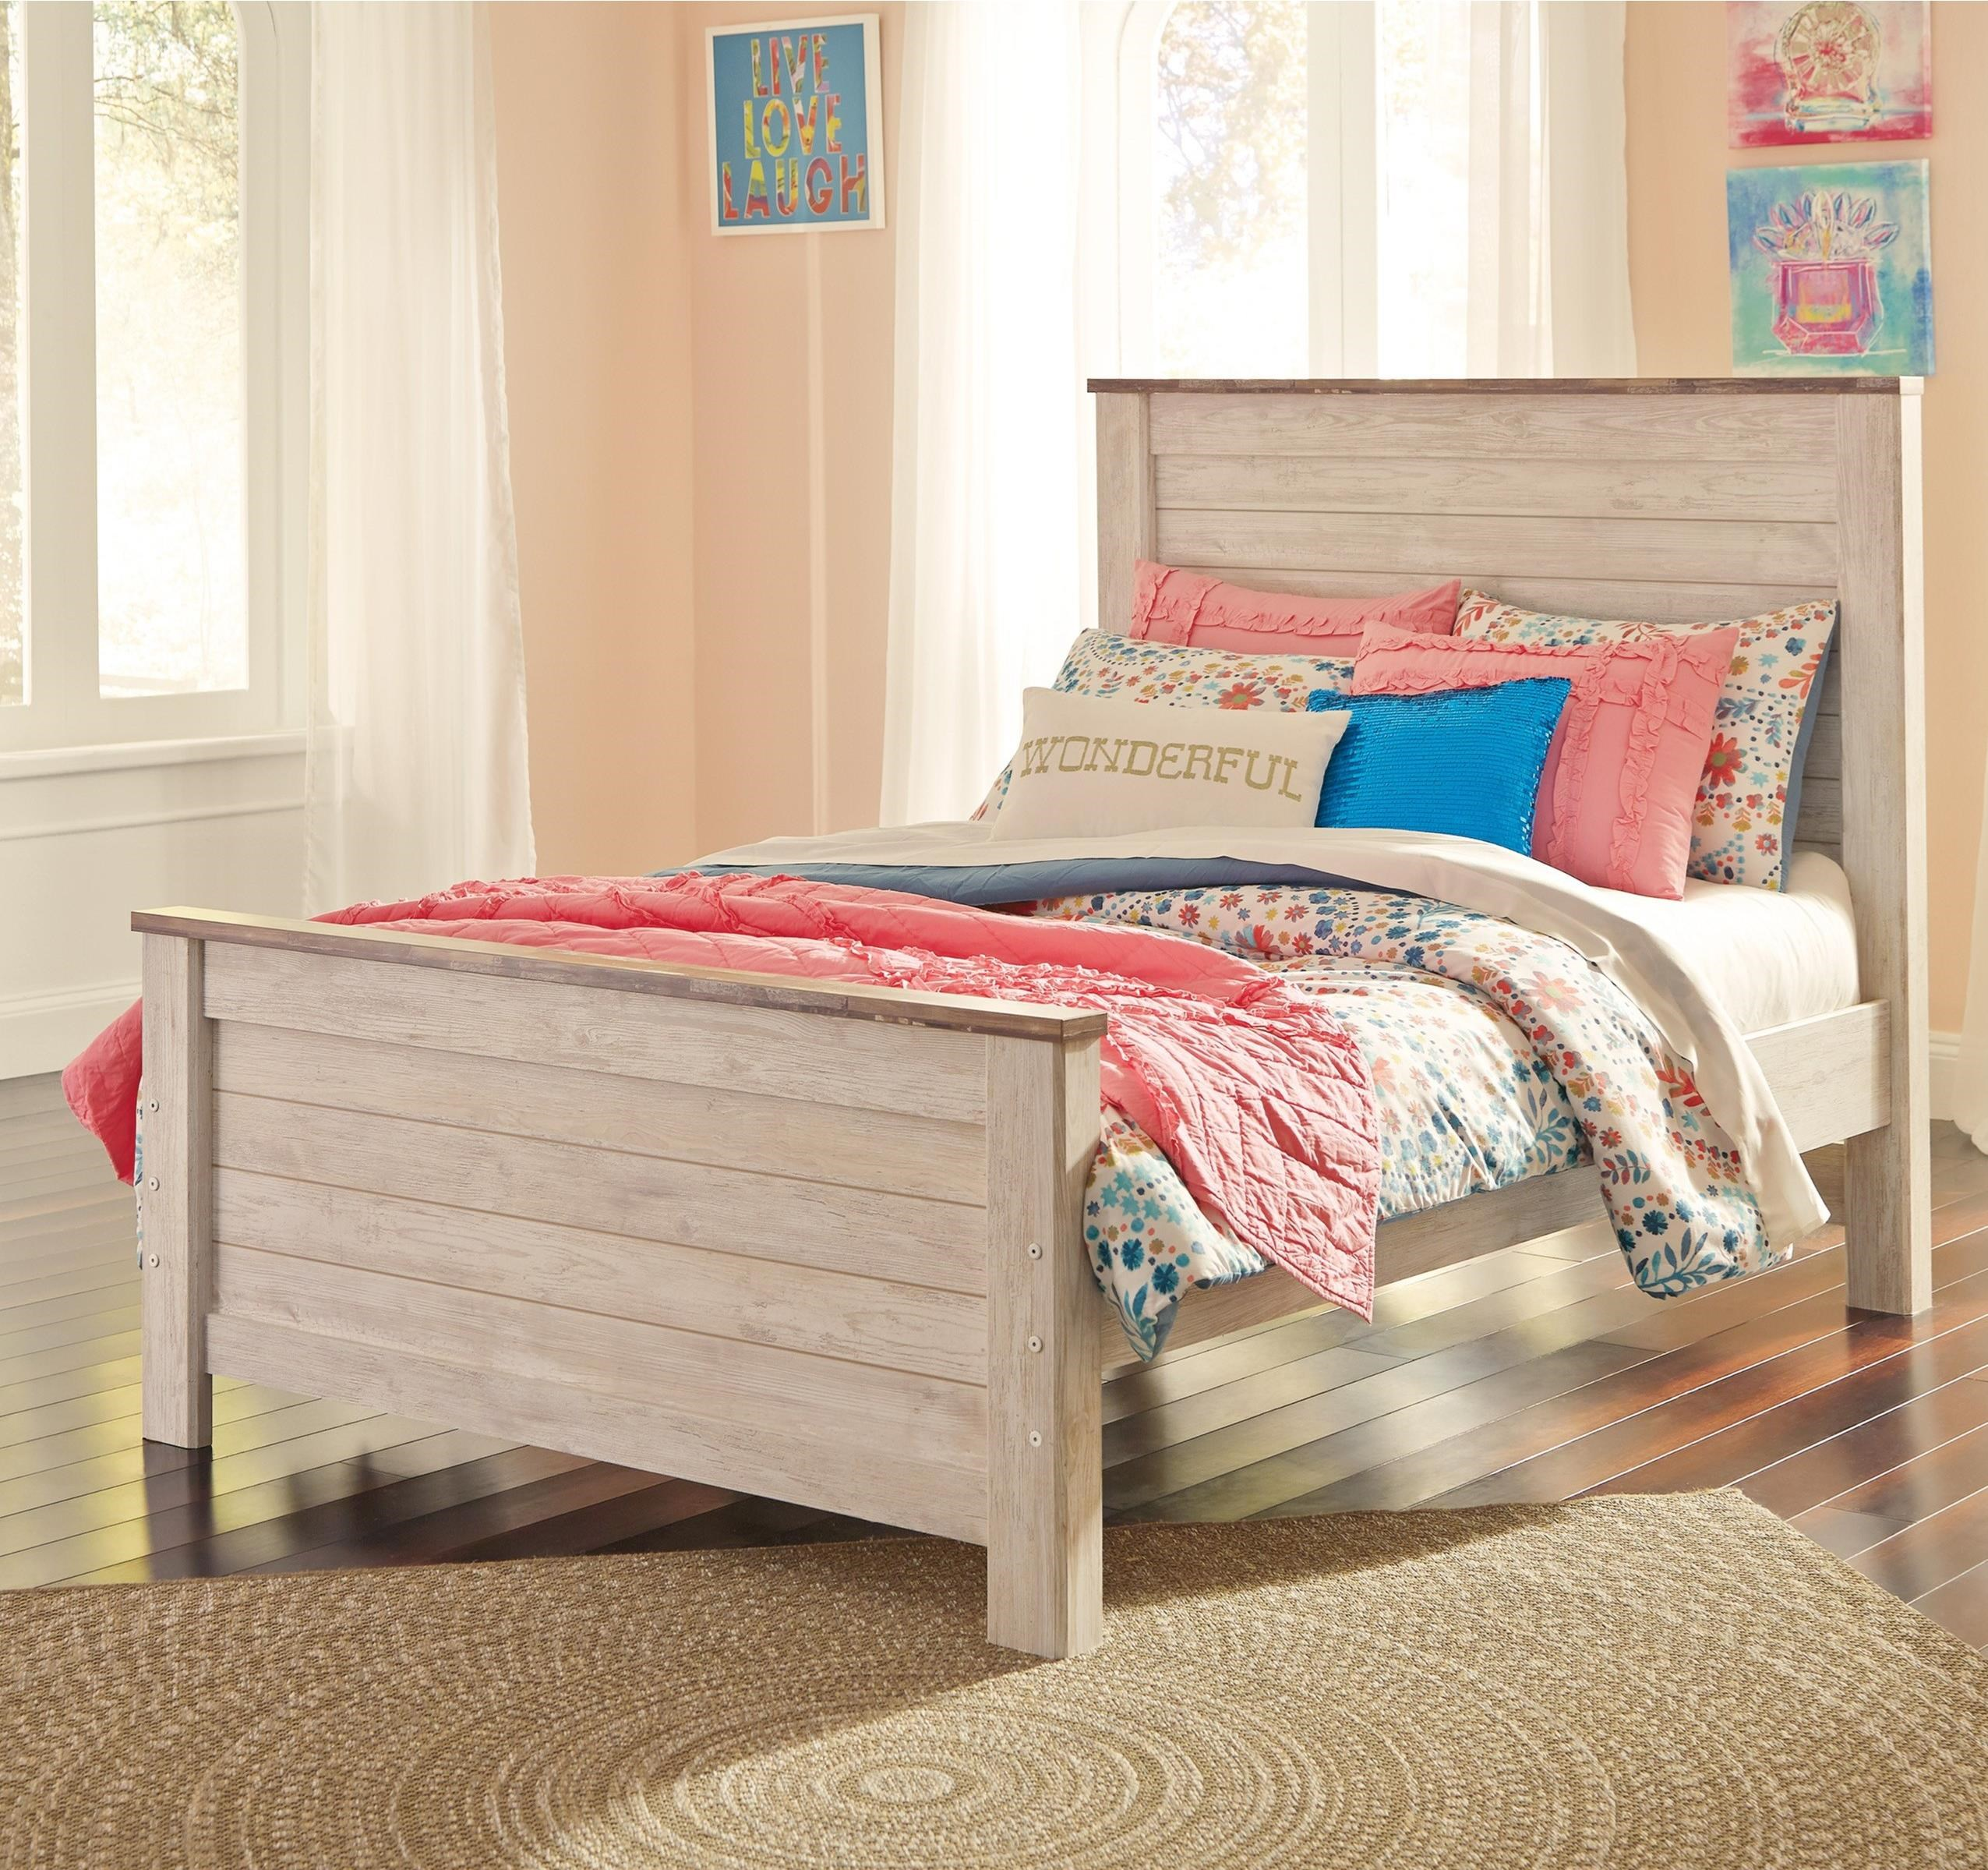 signature design by ashley willowton two tone full panel bed in washed white finish with rustic. Black Bedroom Furniture Sets. Home Design Ideas